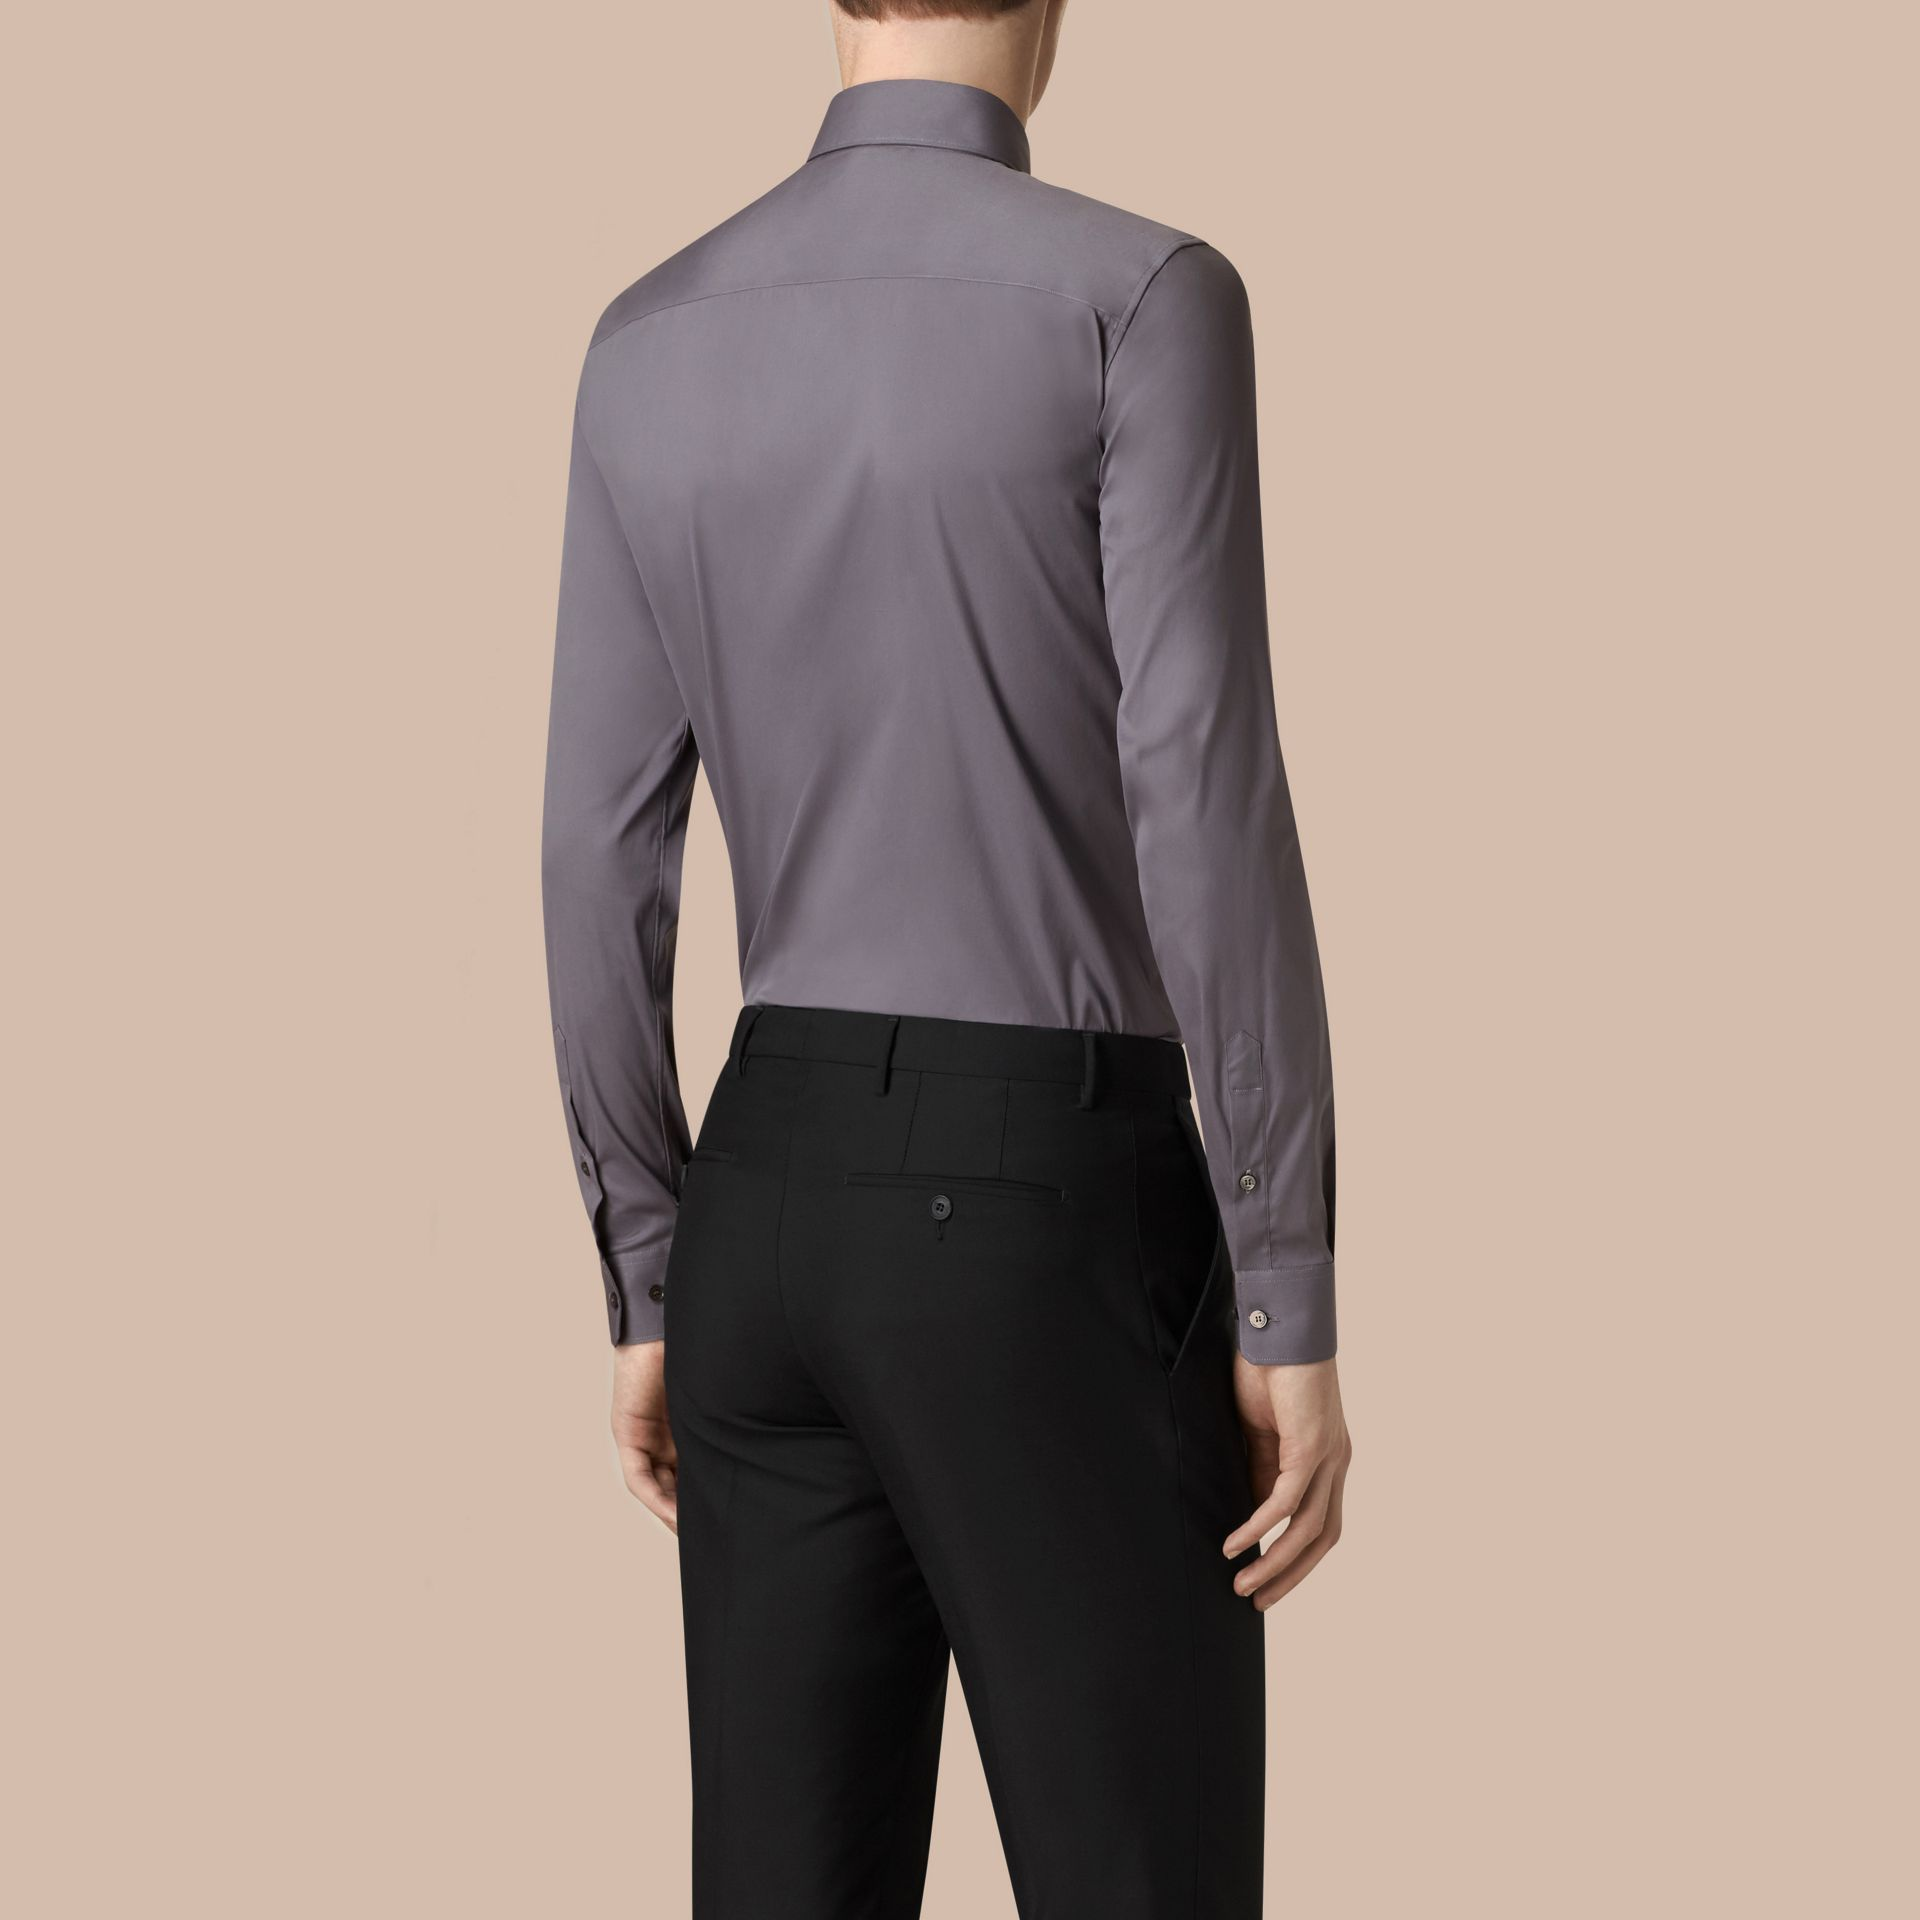 City grey Slim Fit Stretch Cotton Shirt City Grey - gallery image 3